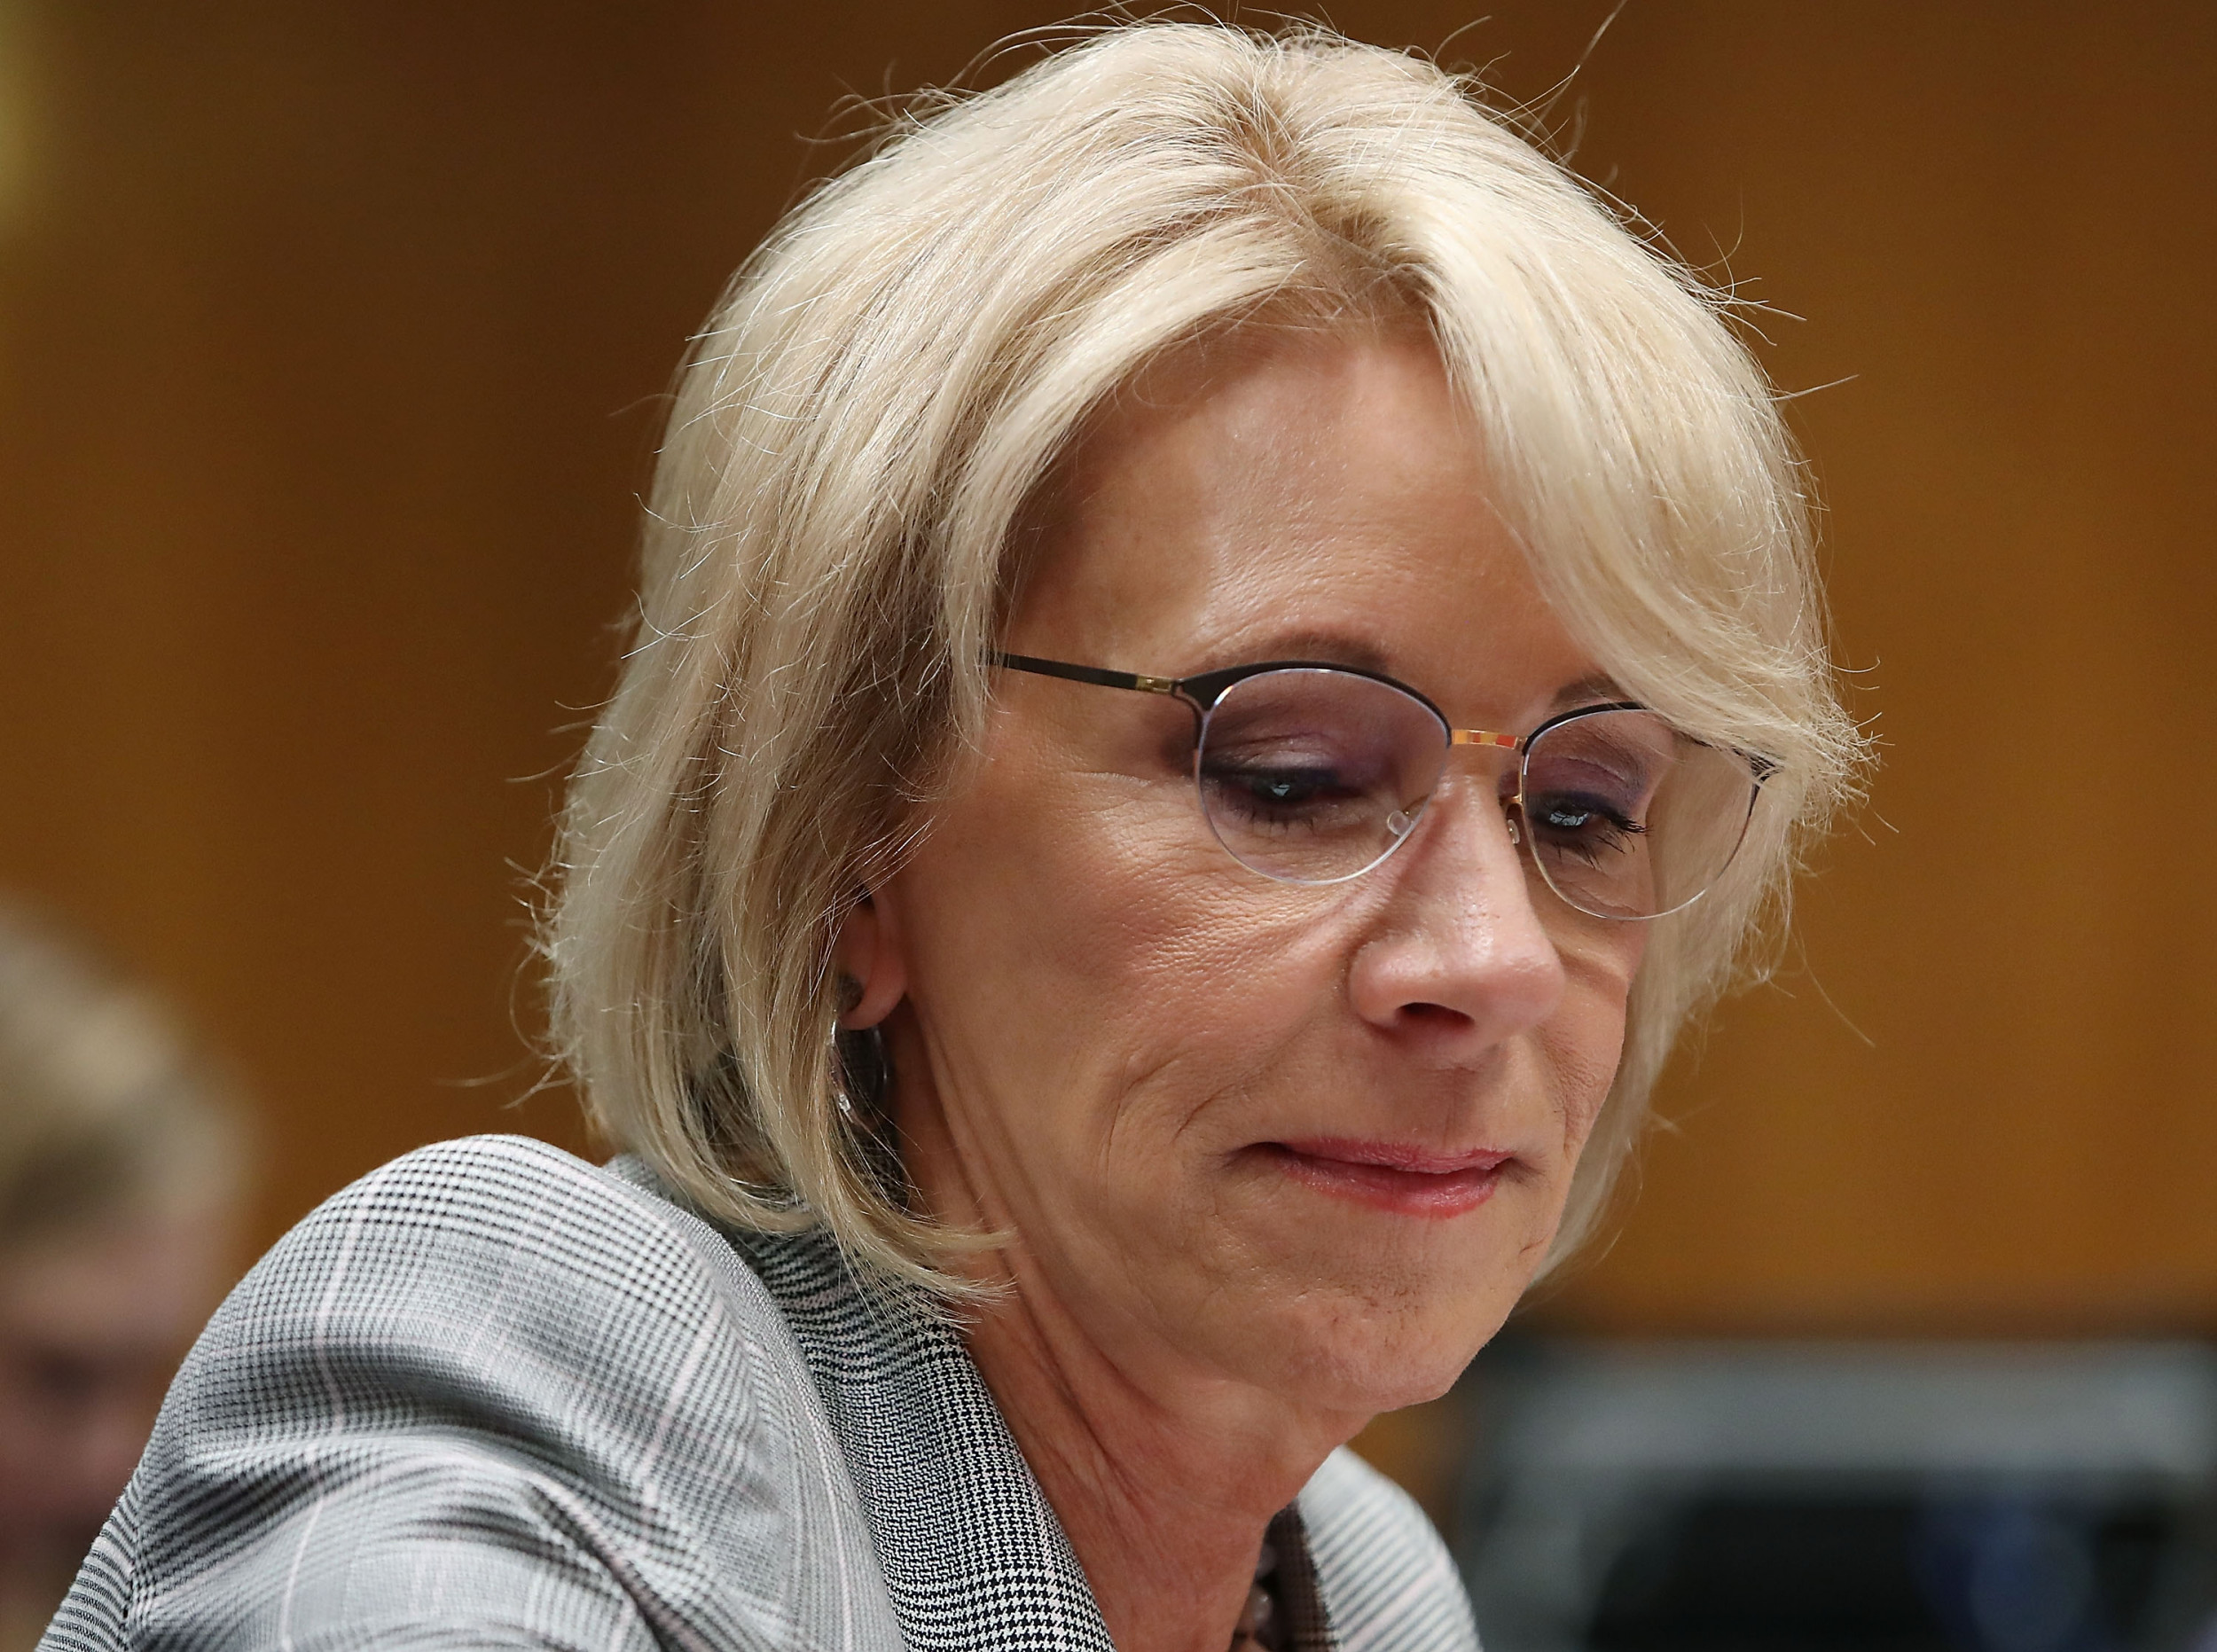 <b>BETSY DEVOS COULD FACE JAIL AFTER JUDGE RULES SHE VIOLATED 2018 ORDER ON STUDENT LOANS</b>